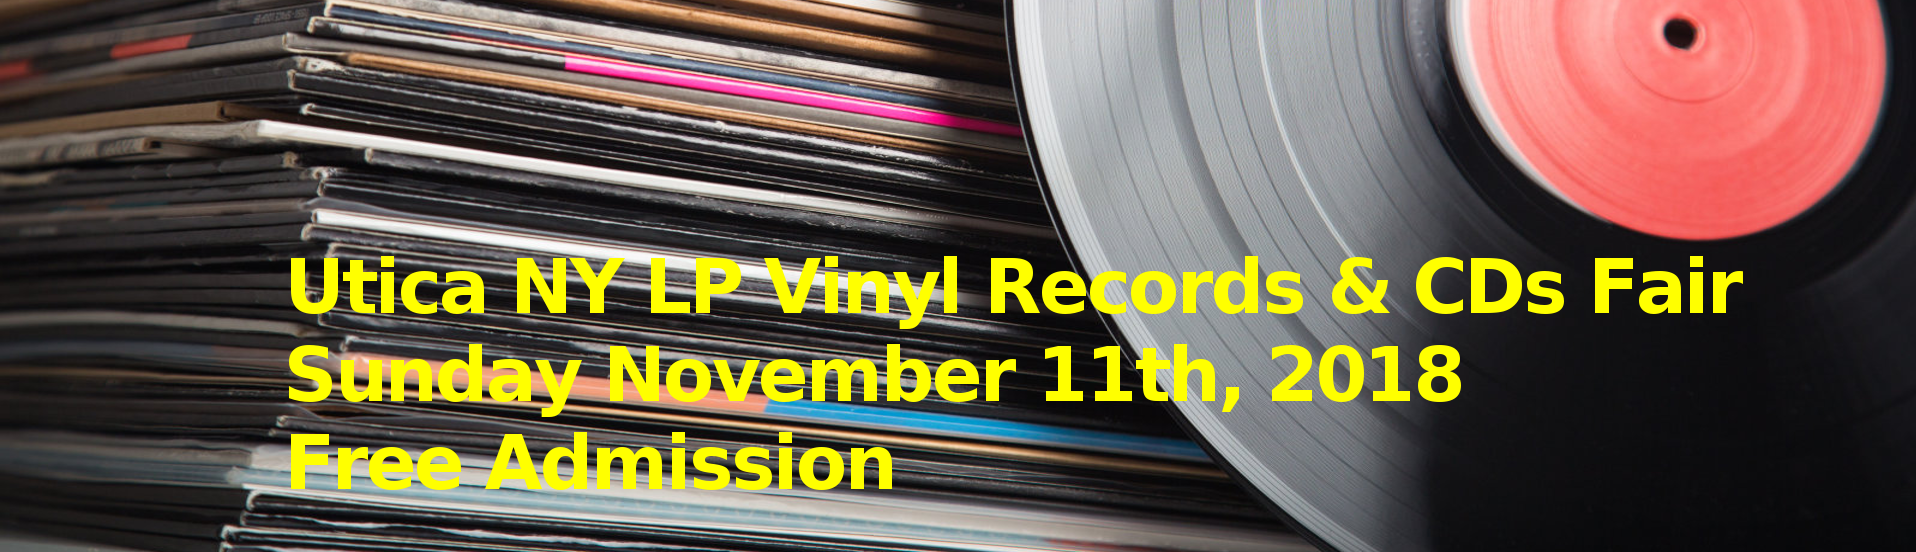 Utica NY LP Vinyl Records and CDs Fair – Sunday November 11th, 2018